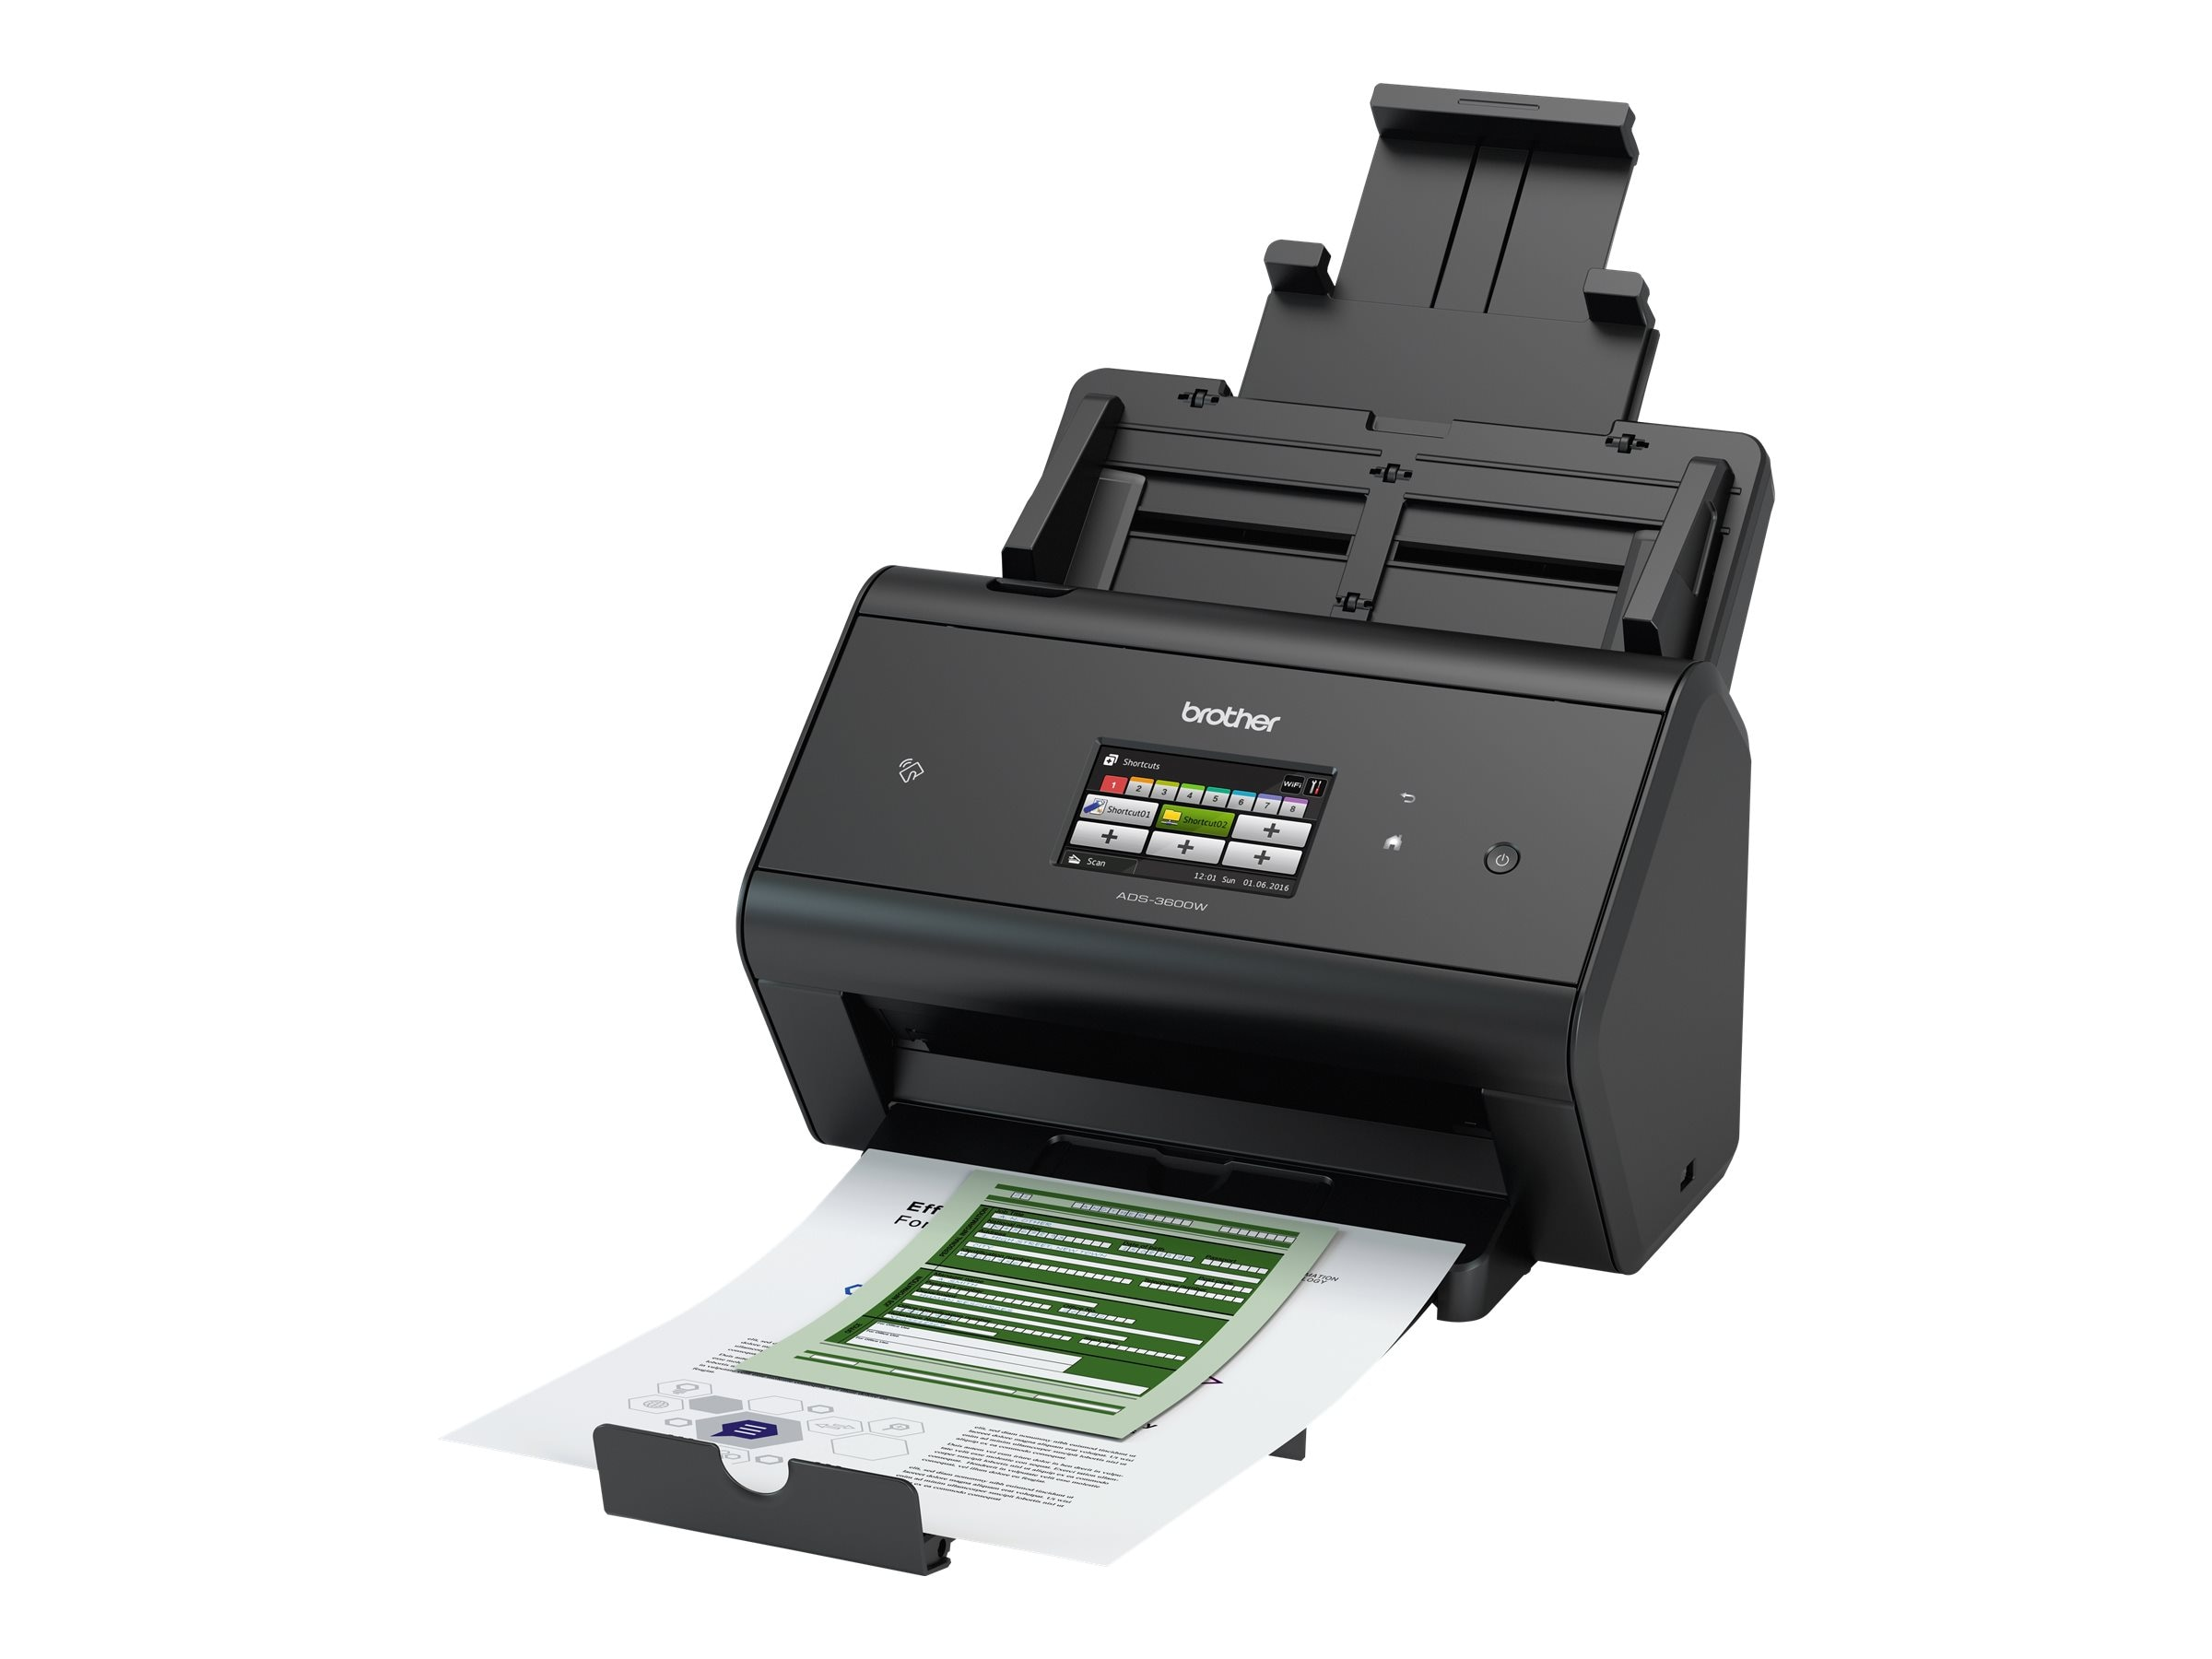 Brother Network Document Scanner